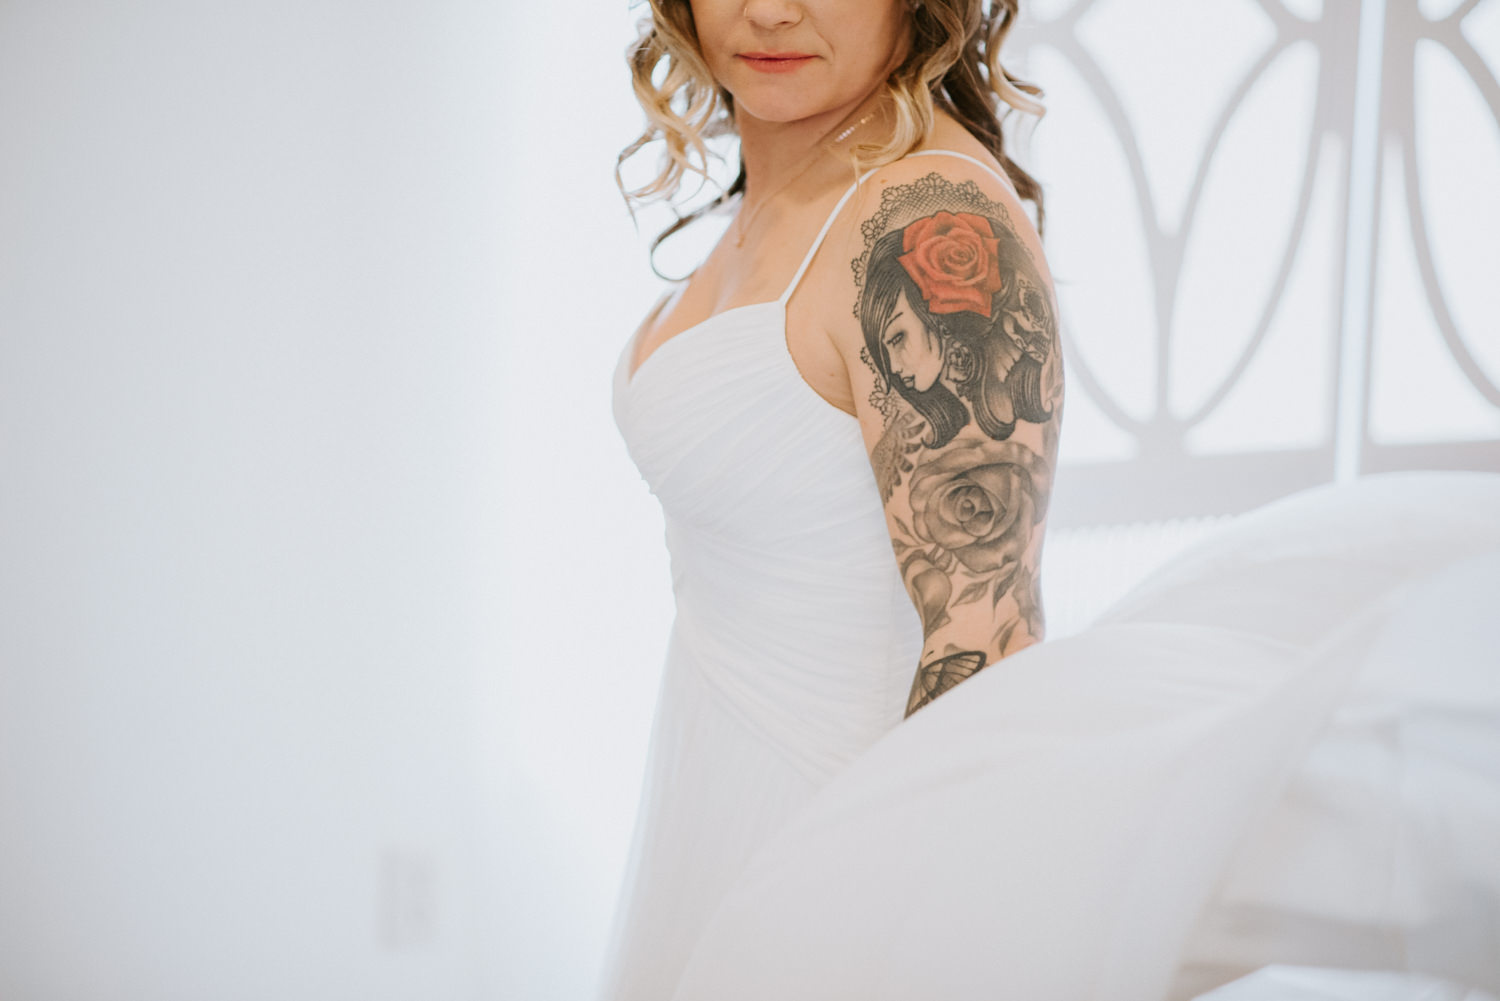 bride with beautiful arm sleeve